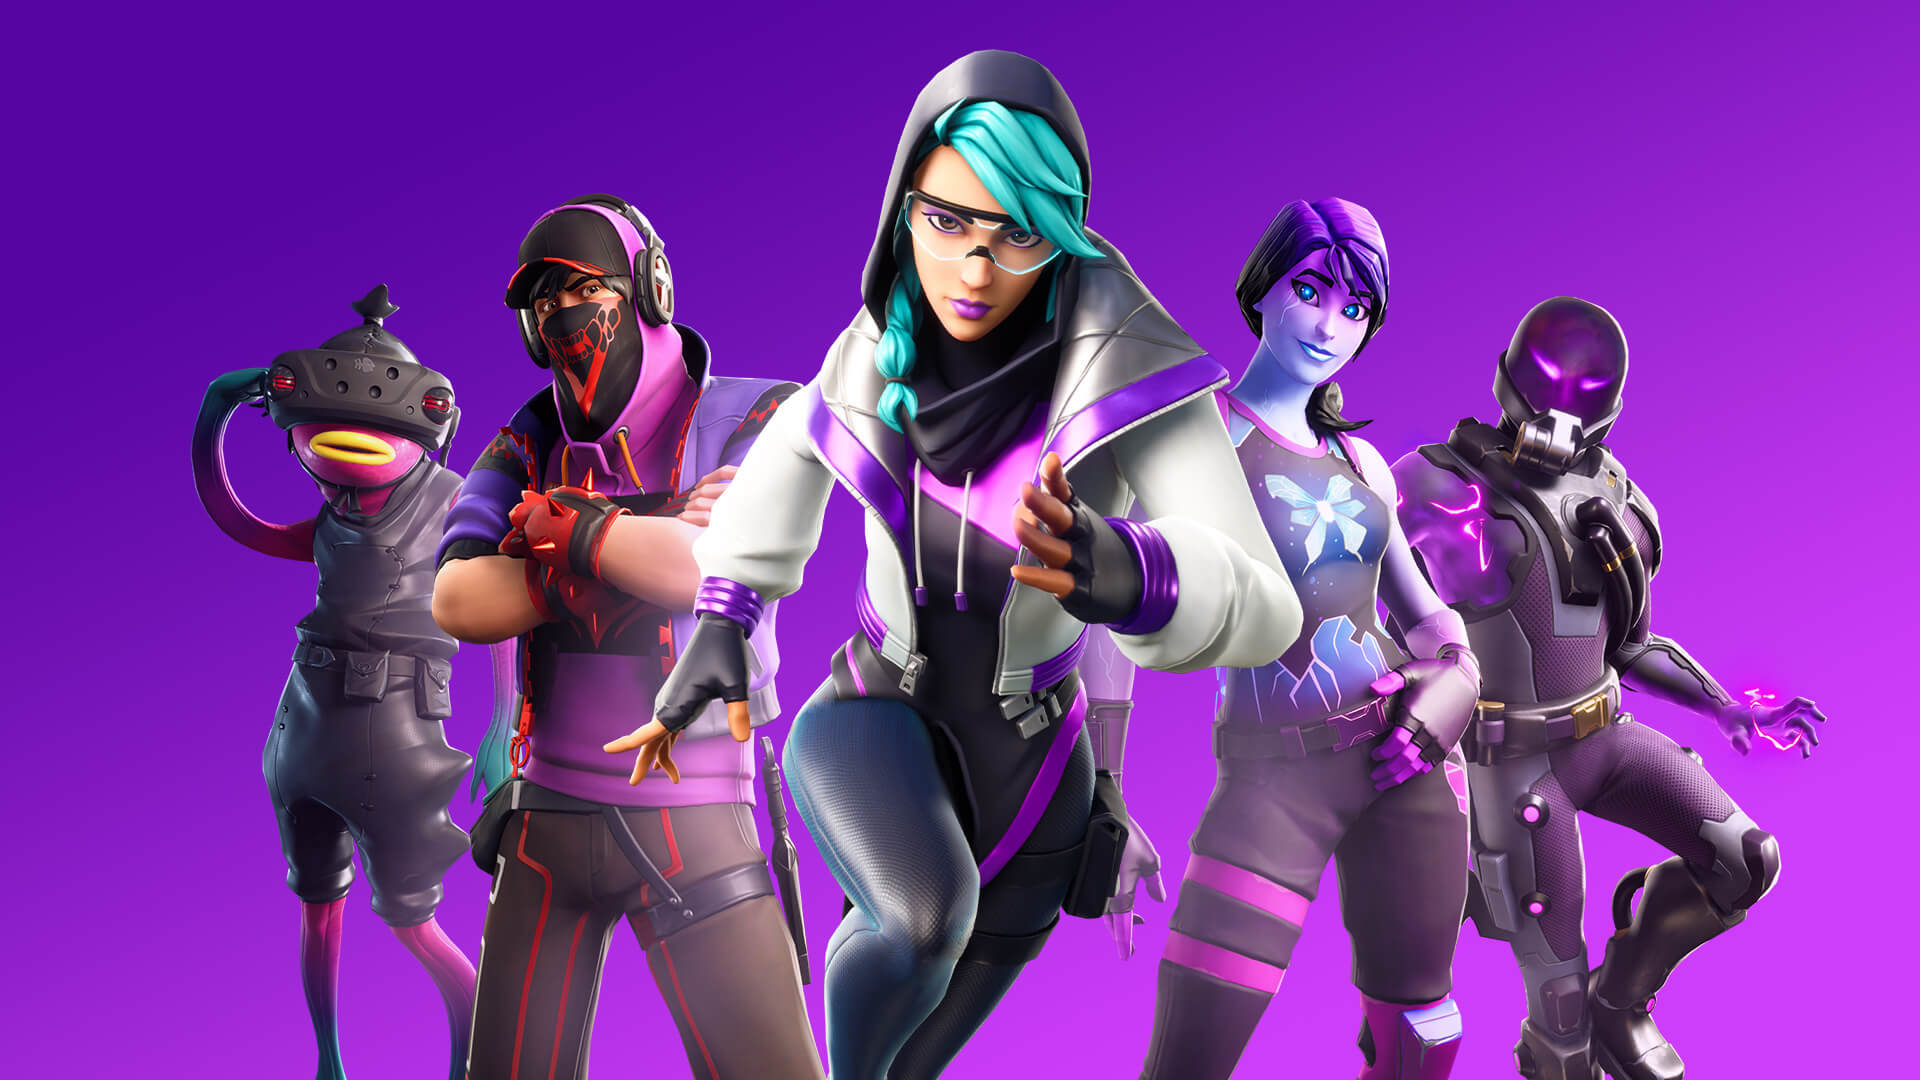 Fortnite Season 11 is Going to Have Bots and Some New Matchmaking 1920x1080